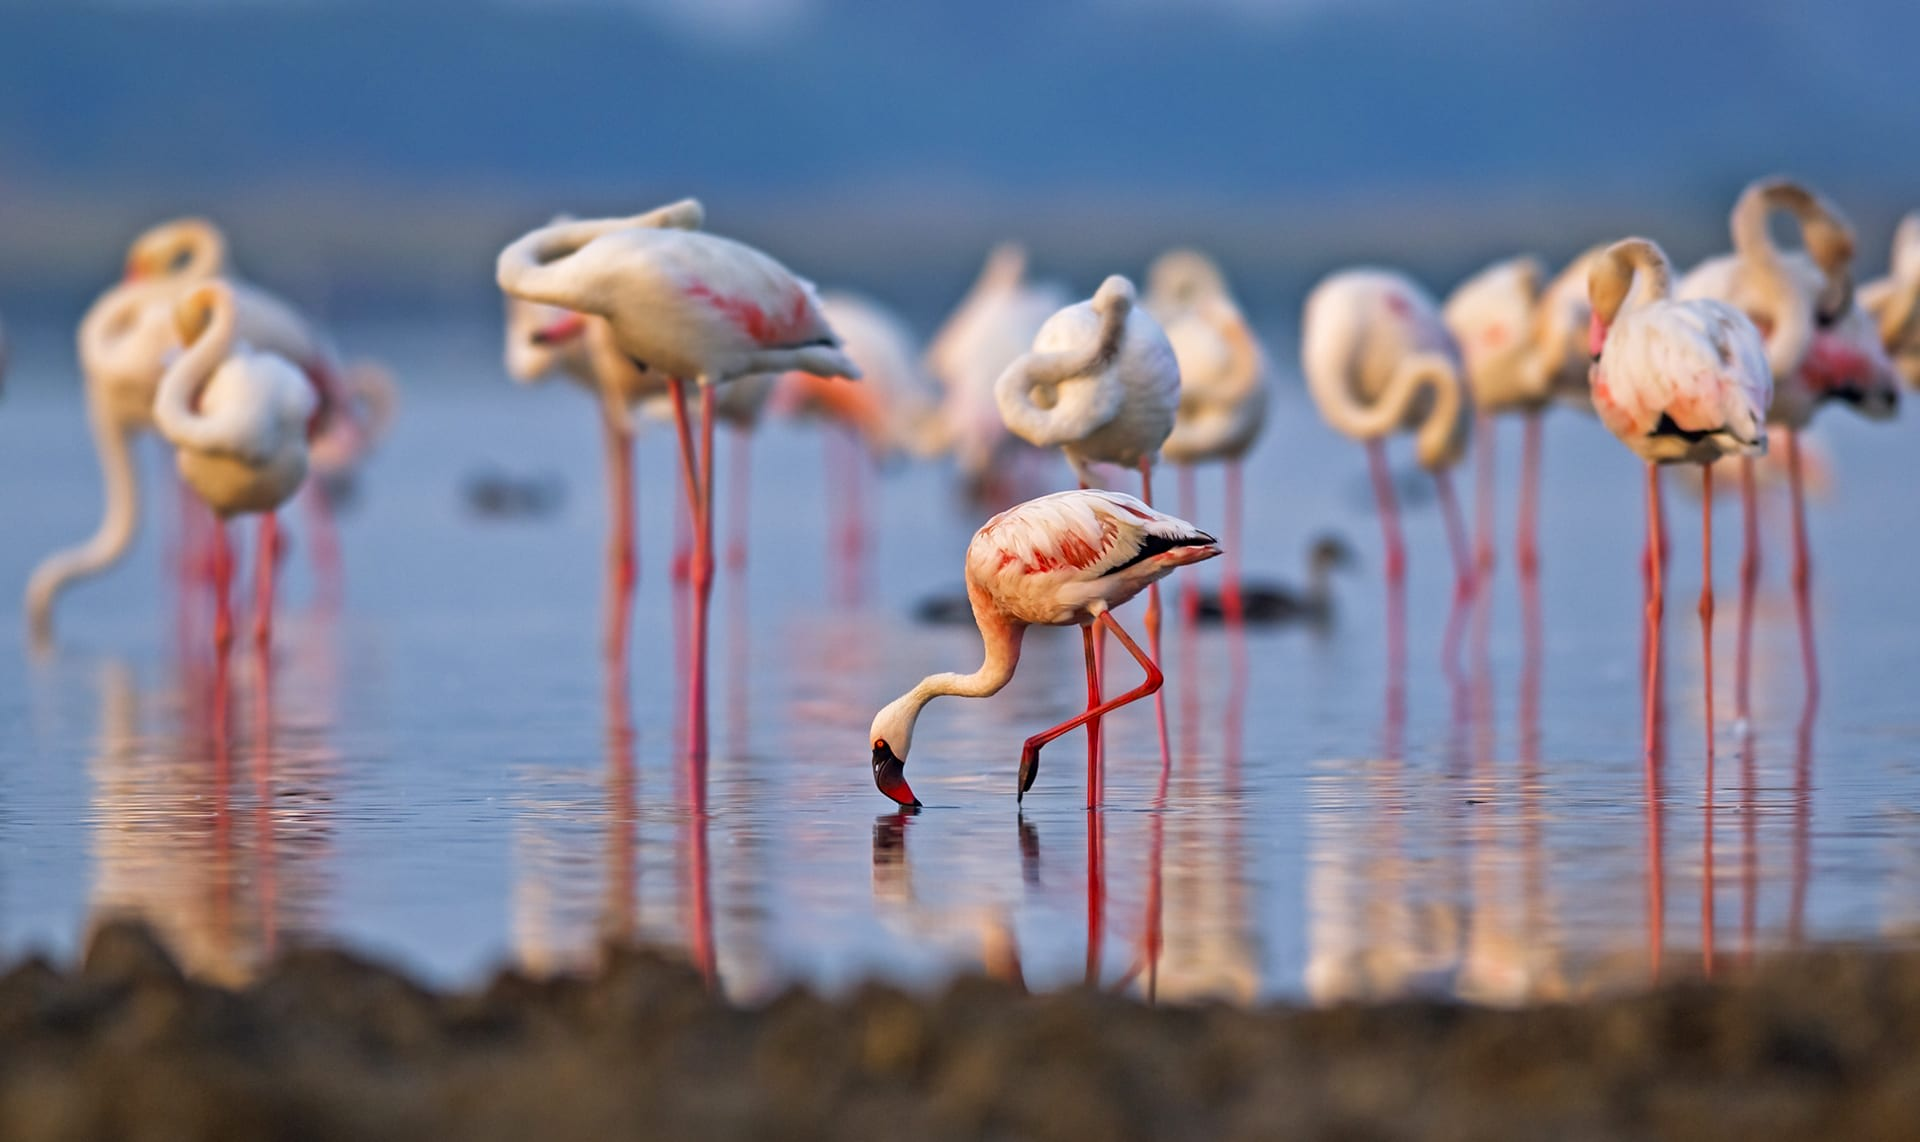 """Physiologically, flamingos are primed for this landscape. Like many wader species, they have long legs and webbed feet to grip the muddy soil without losing balance. """"My fingers would probably get desiccated in about ten minutes with the high degree of salinity in the water,"""" says Shah. """"but their webbing is unharmed because they are designed for this brined landscape. They might look delicate, but make no mistake, they are incredibly strong."""""""